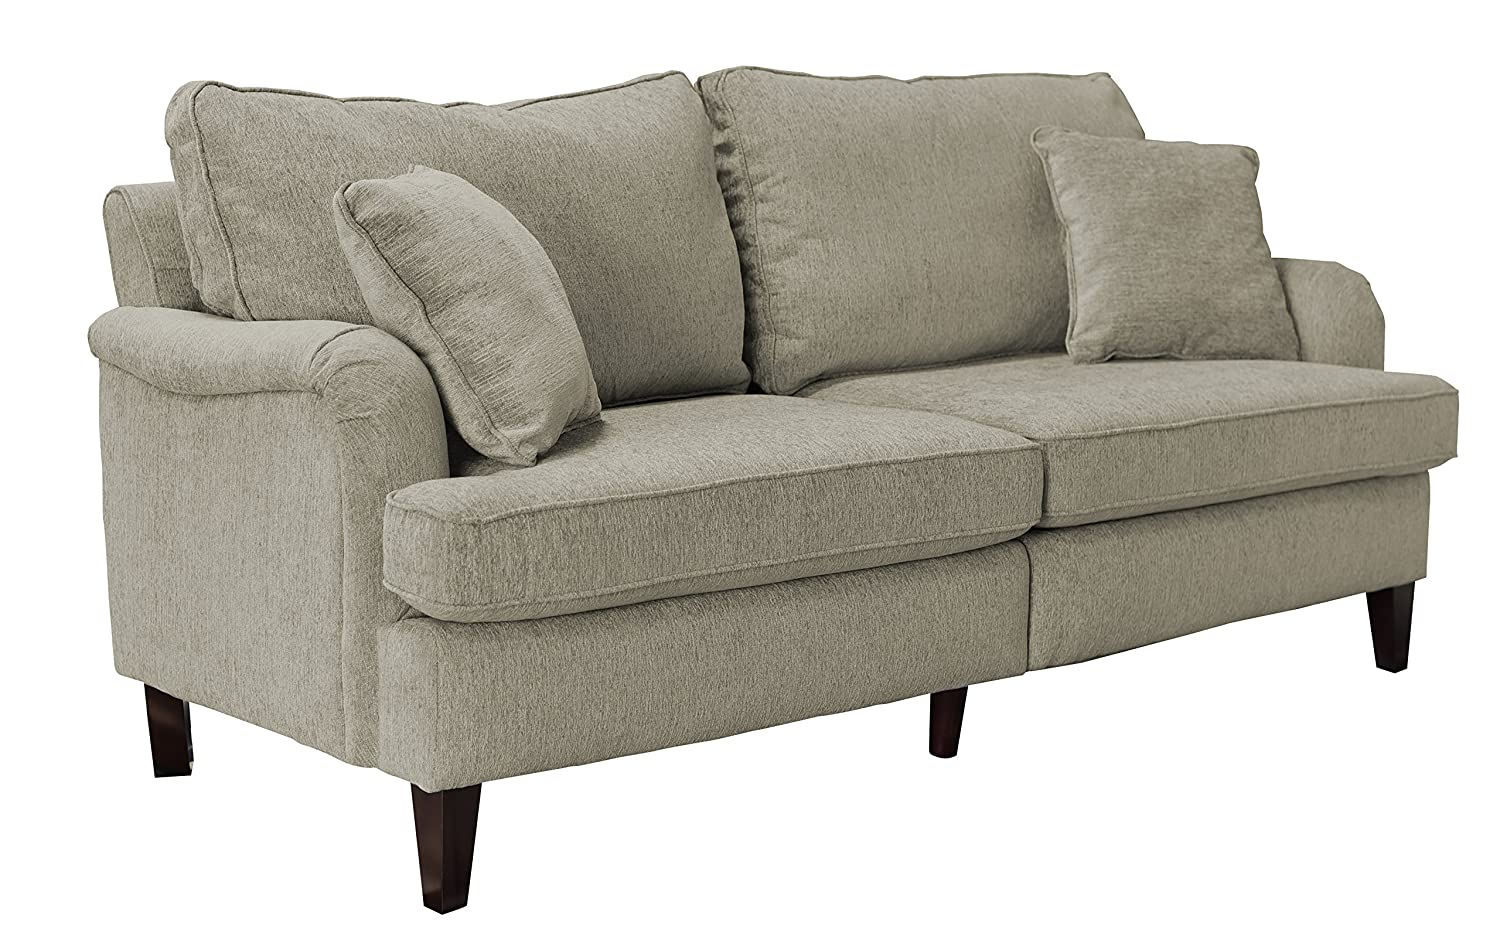 furniture sofa products serta hughes by item number couch upholstery casual pillow b topped s